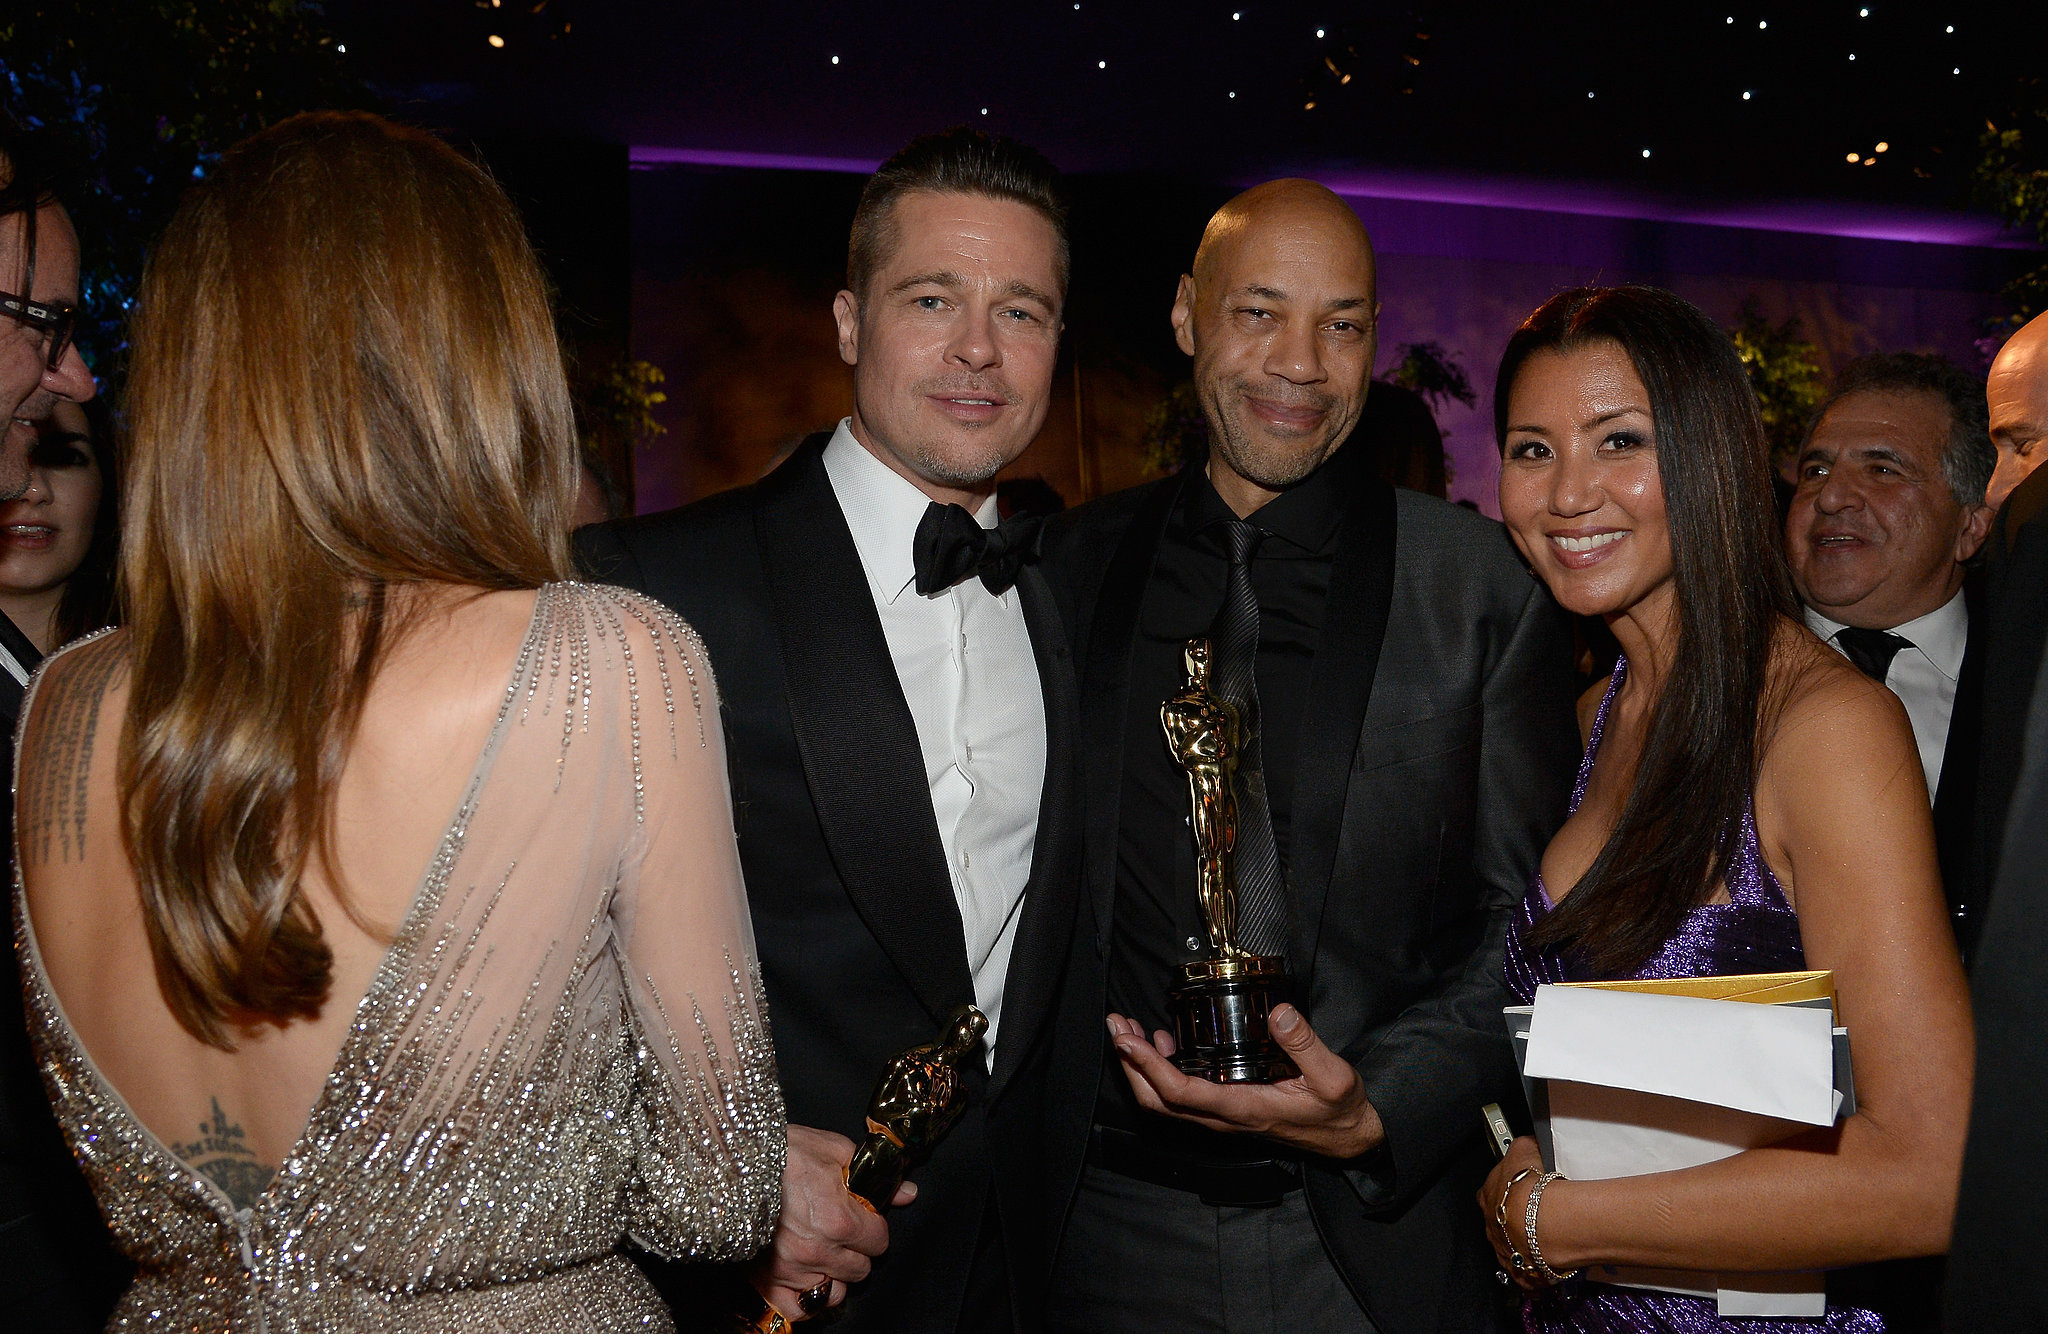 Brad Pitt mingled with 12 Years a Slave screenwriter John Ridley and Gayle Ridley.